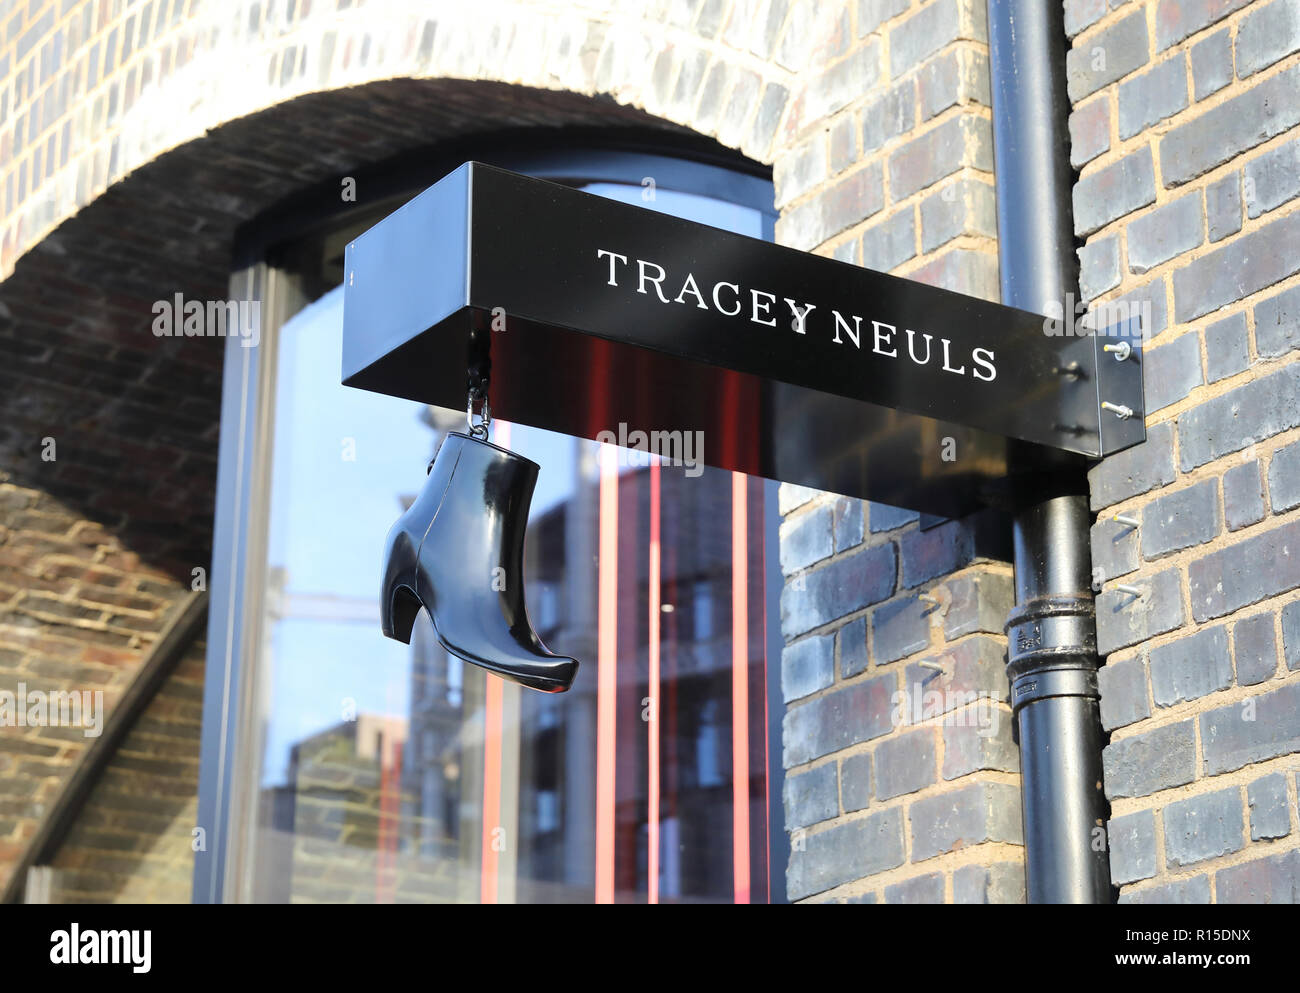 f7eb0edd0e London Shop Retail Shoe Photos   London Shop Retail Shoe Images - Alamy